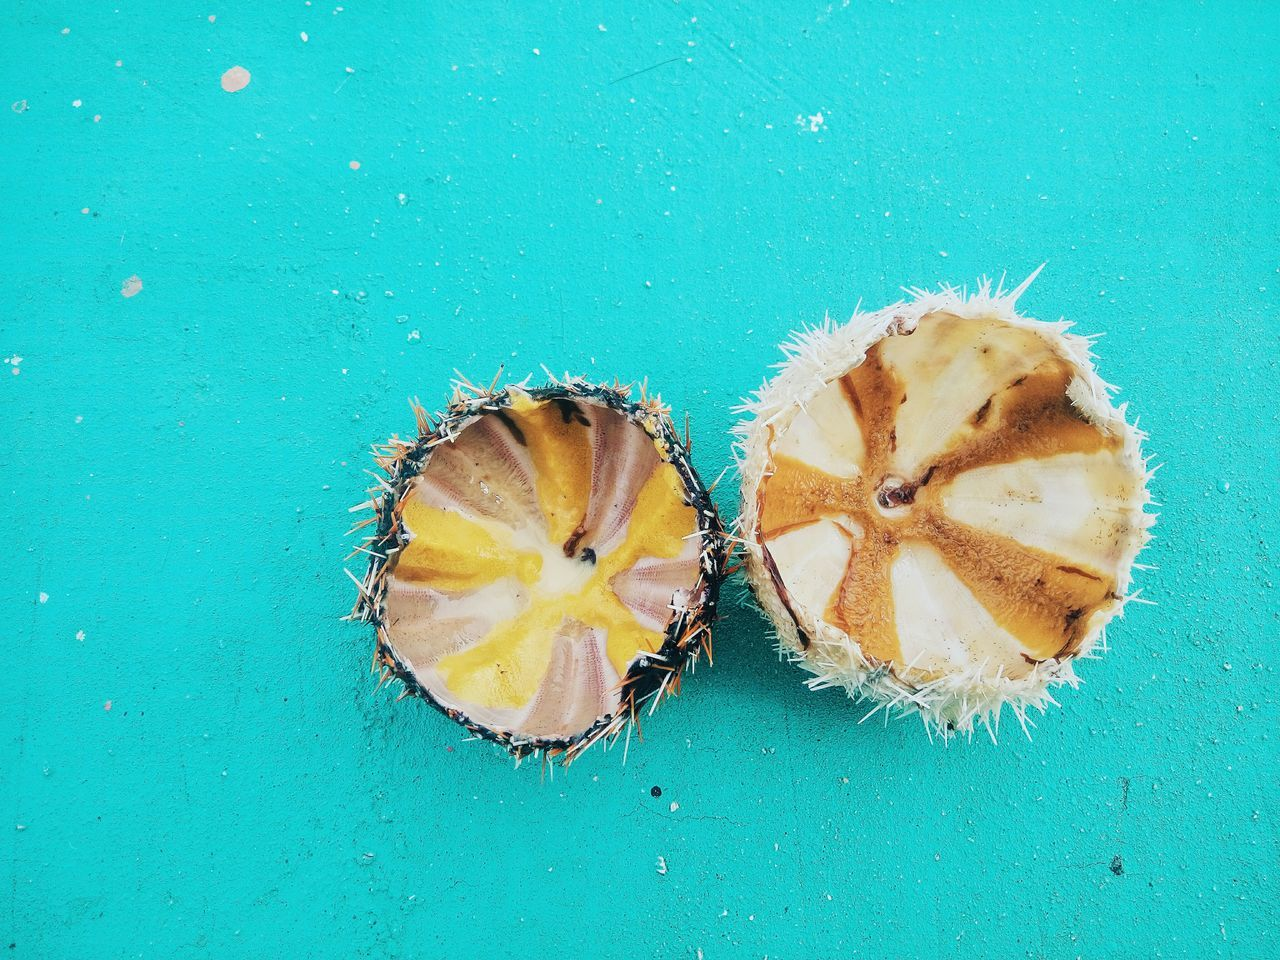 Salawaki (Sea Urchin), when your boat docks at the sandbar, you will be approached by locals selling fresh seafoods such as sea urchin, scallops & oyster. Finding New Frontiers Seafoods Seaurchins Food Exotic Food Fresh